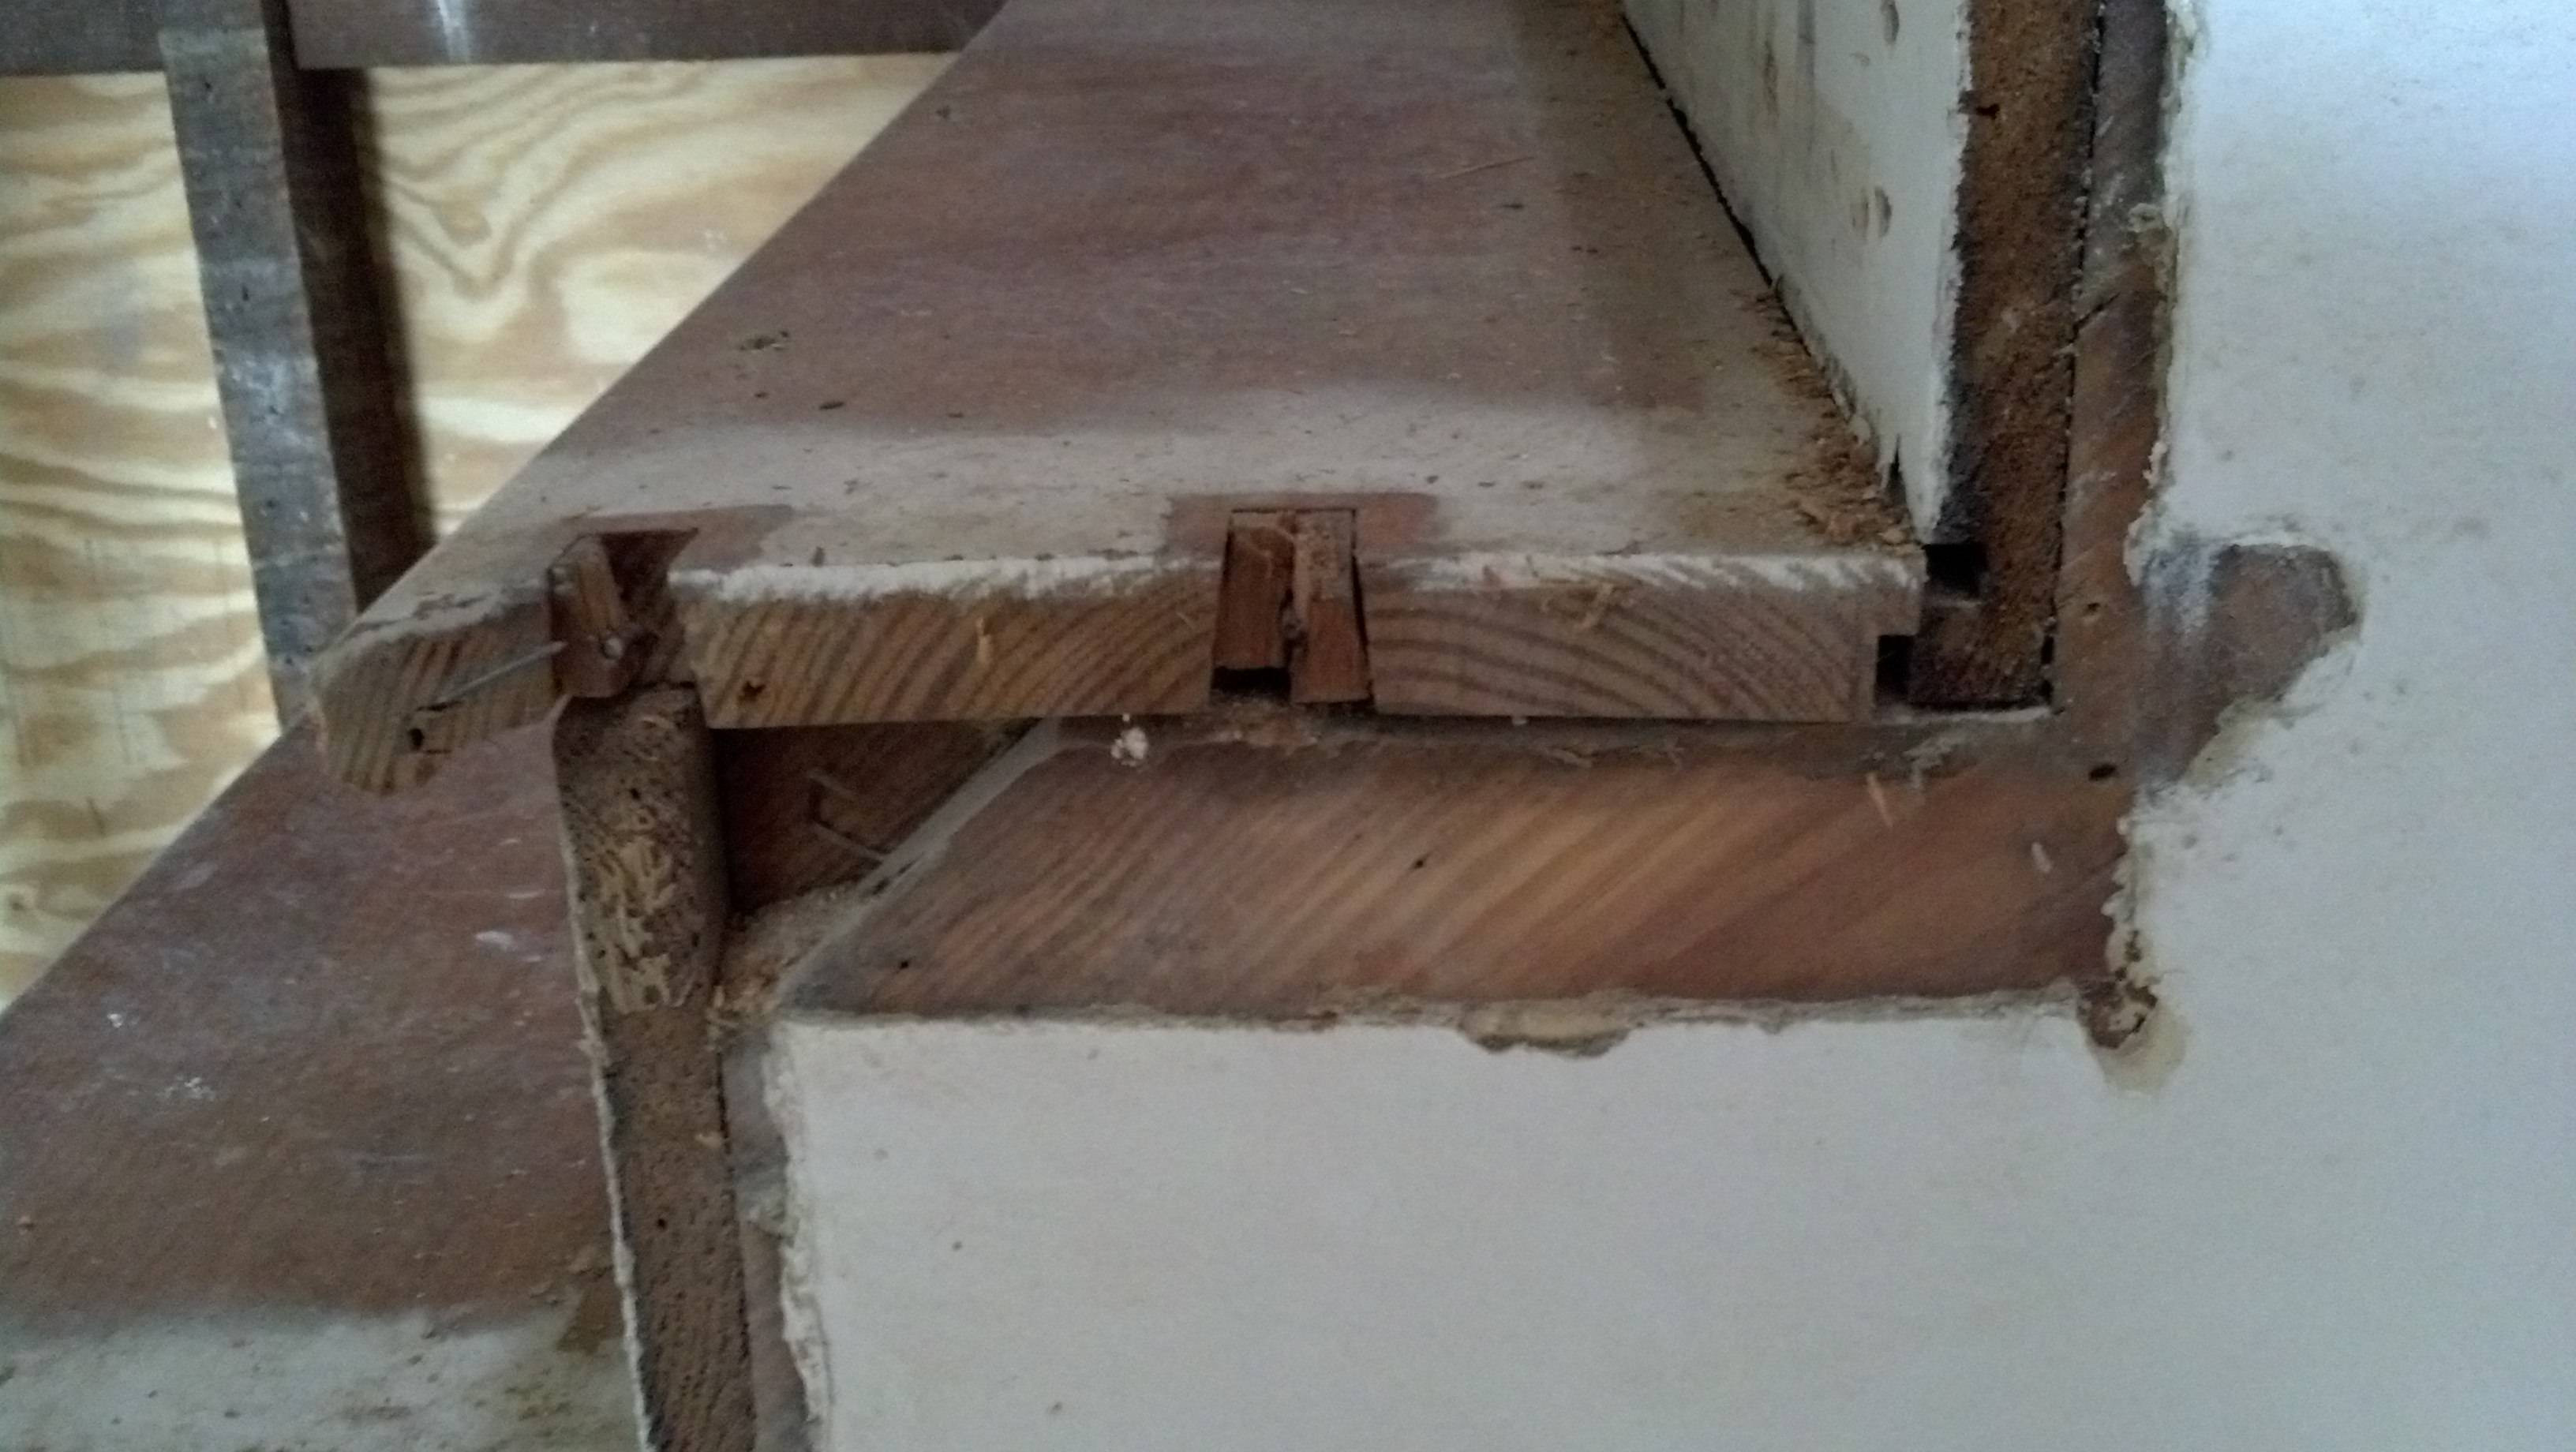 22 Fantastic How Much is the Average Cost to Install Hardwood Floors 2021 free download how much is the average cost to install hardwood floors of how should stair treads and risers be assembled home improvement regarding see picture enter image description here